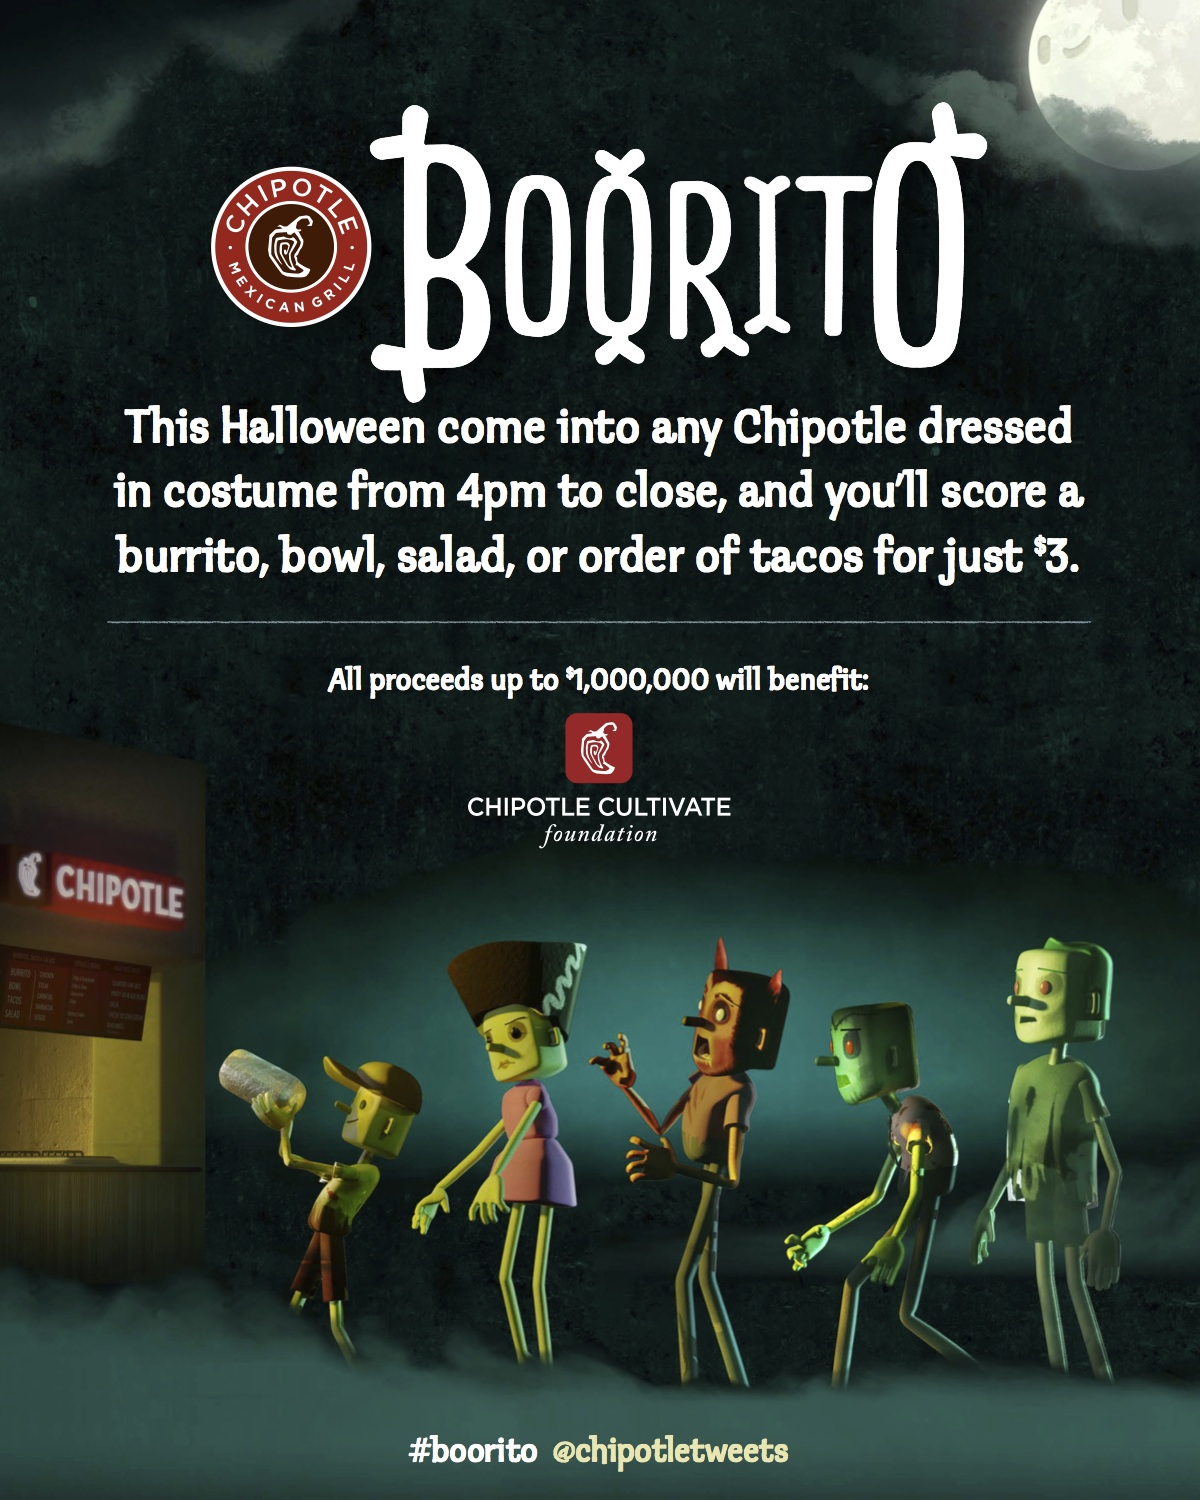 Come to Chipotle Locations in Costume on Halloween for Boorito ...